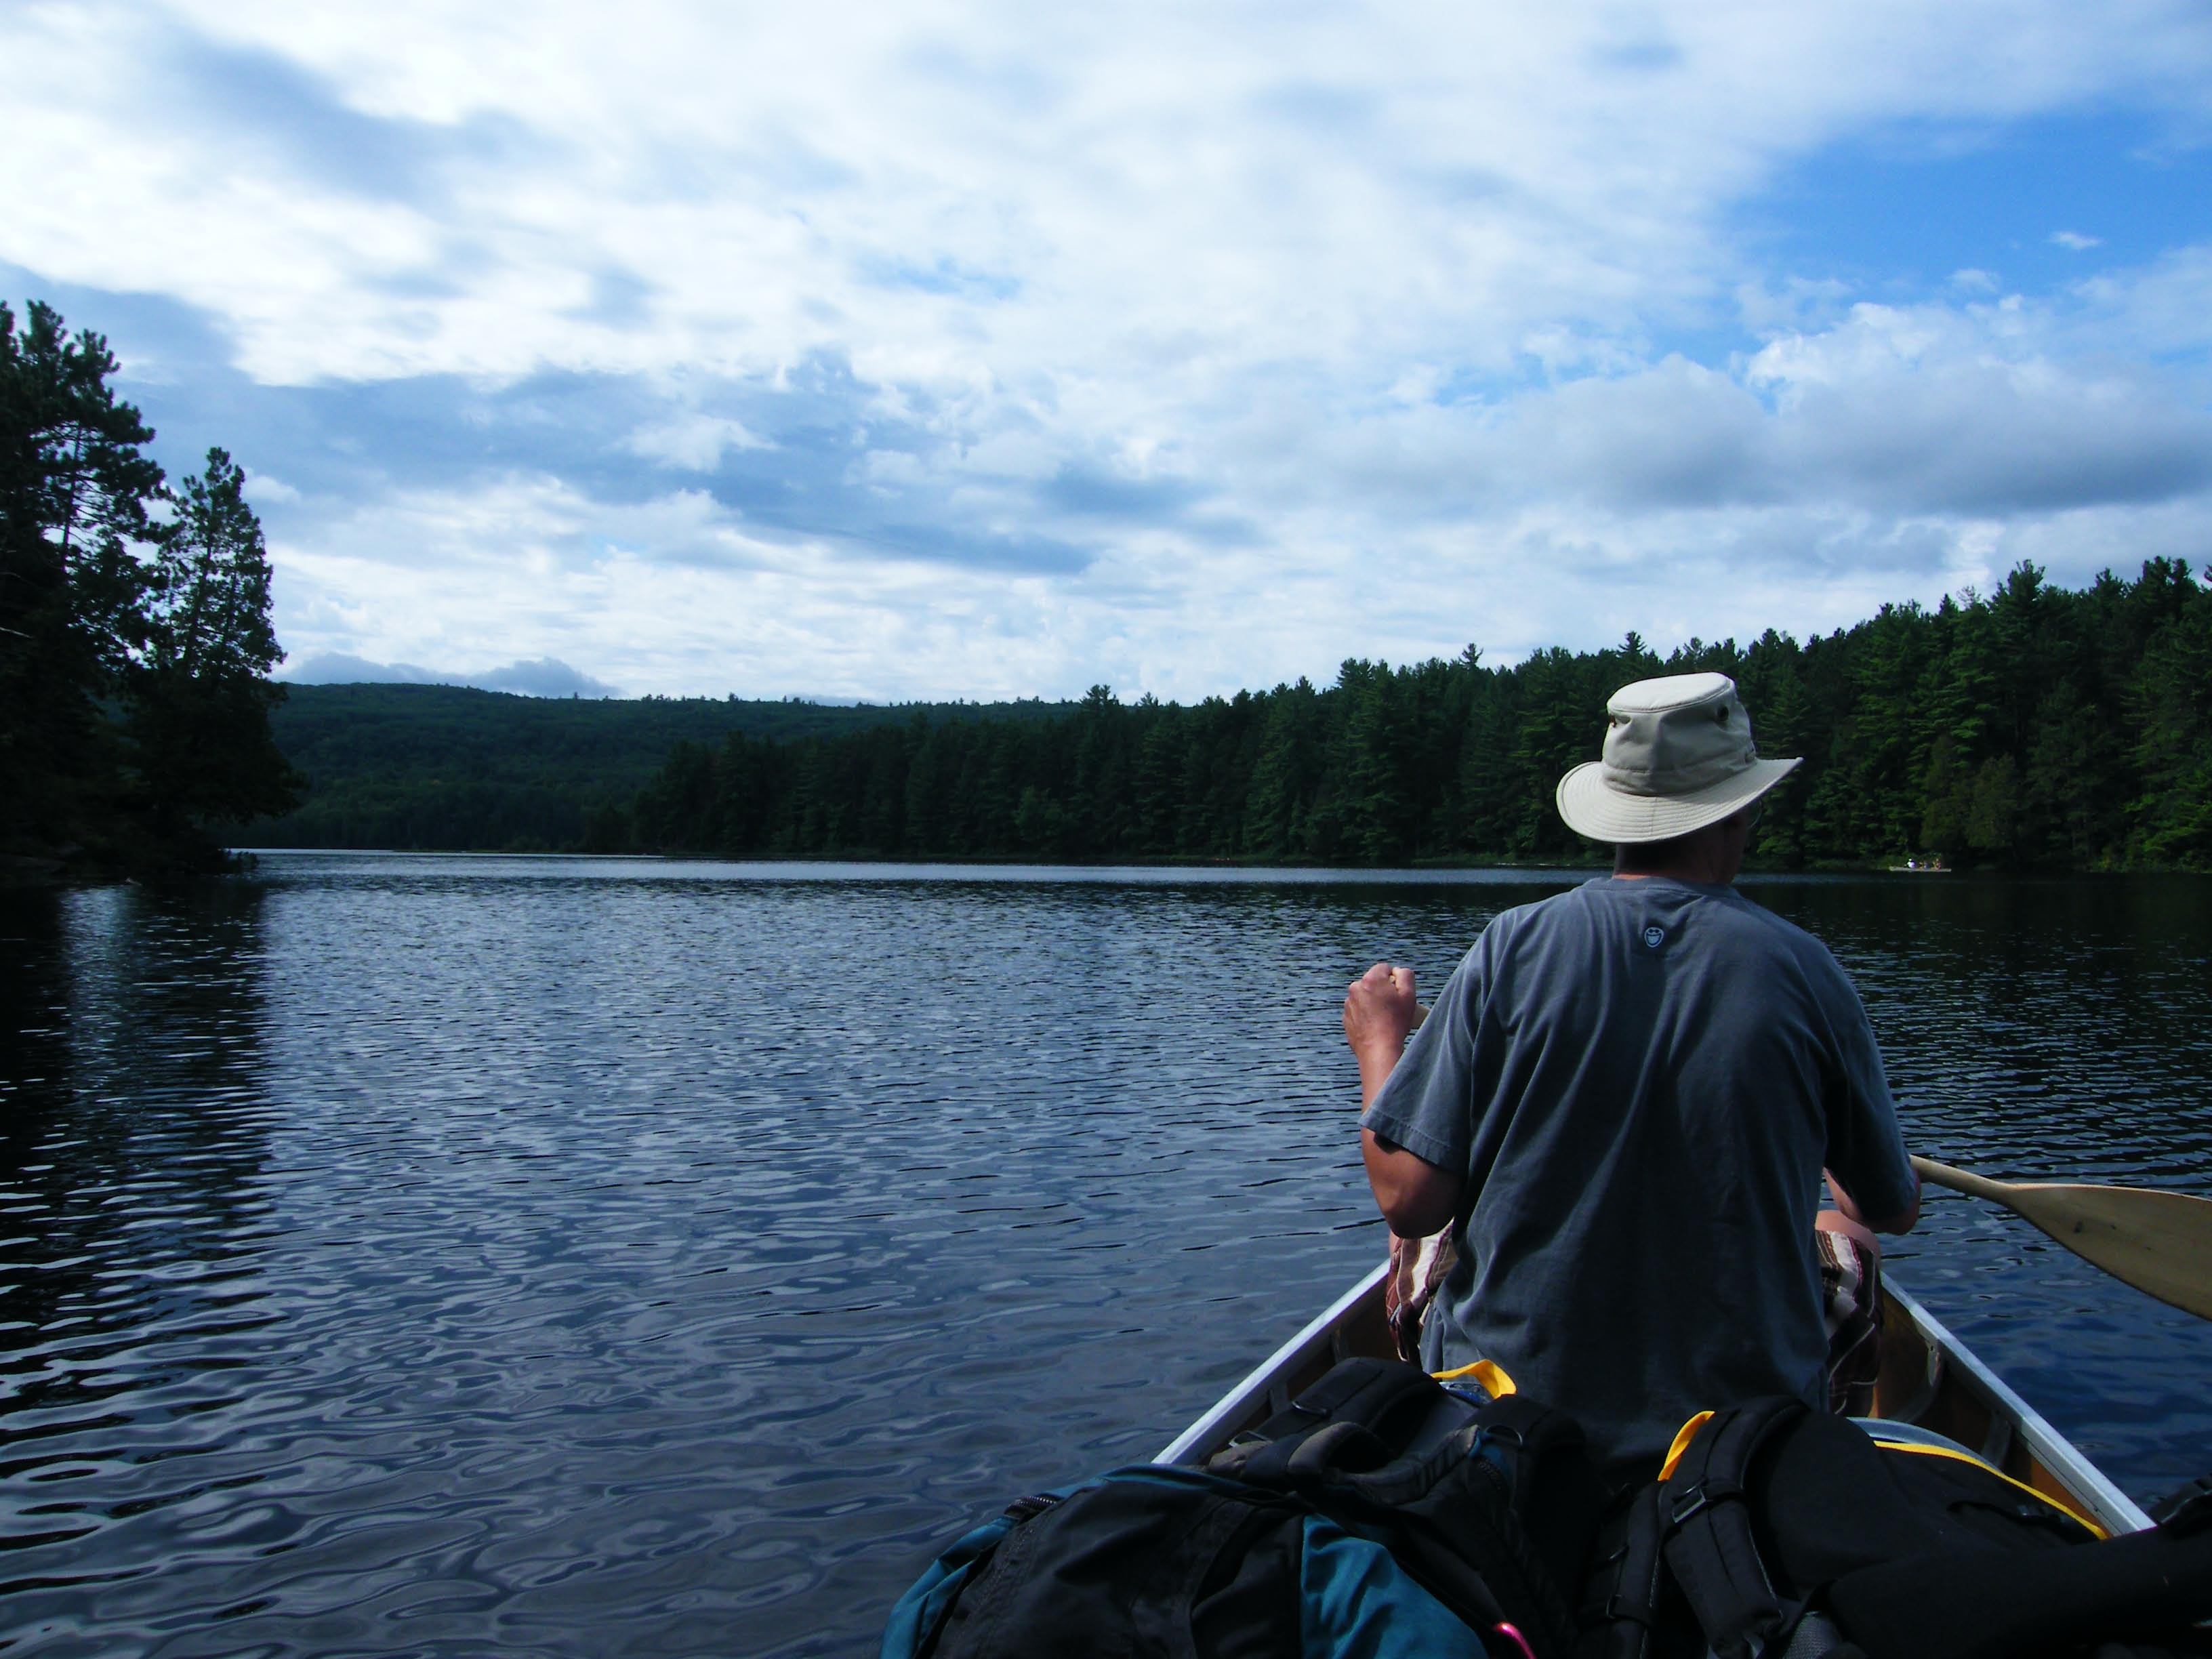 Eric on the Barron River, Algonquin Park, August 2011